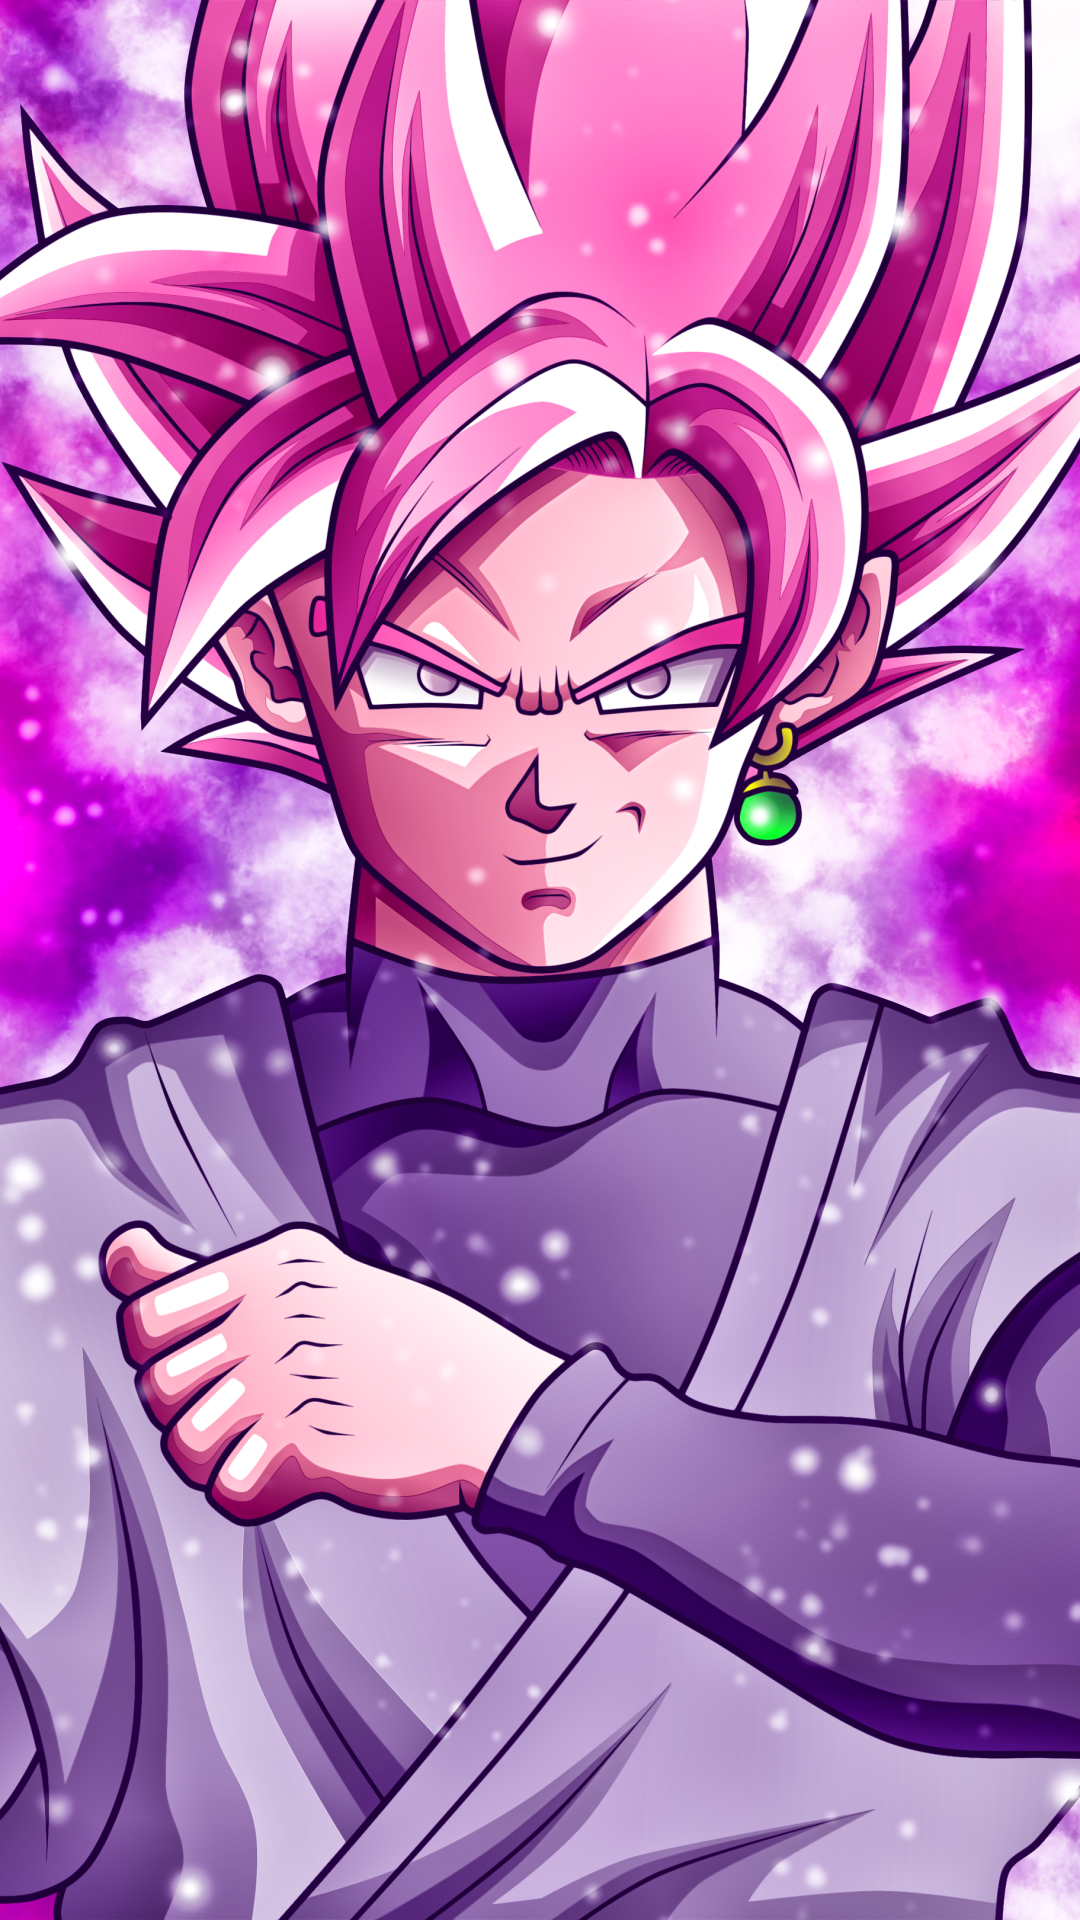 Download This Wallpaper Anime Dragon Ball Super 1080x1920 For All Your Phones And Tablets Anime Dragon Ball Super Anime Dragon Ball Dragon Ball Super Manga